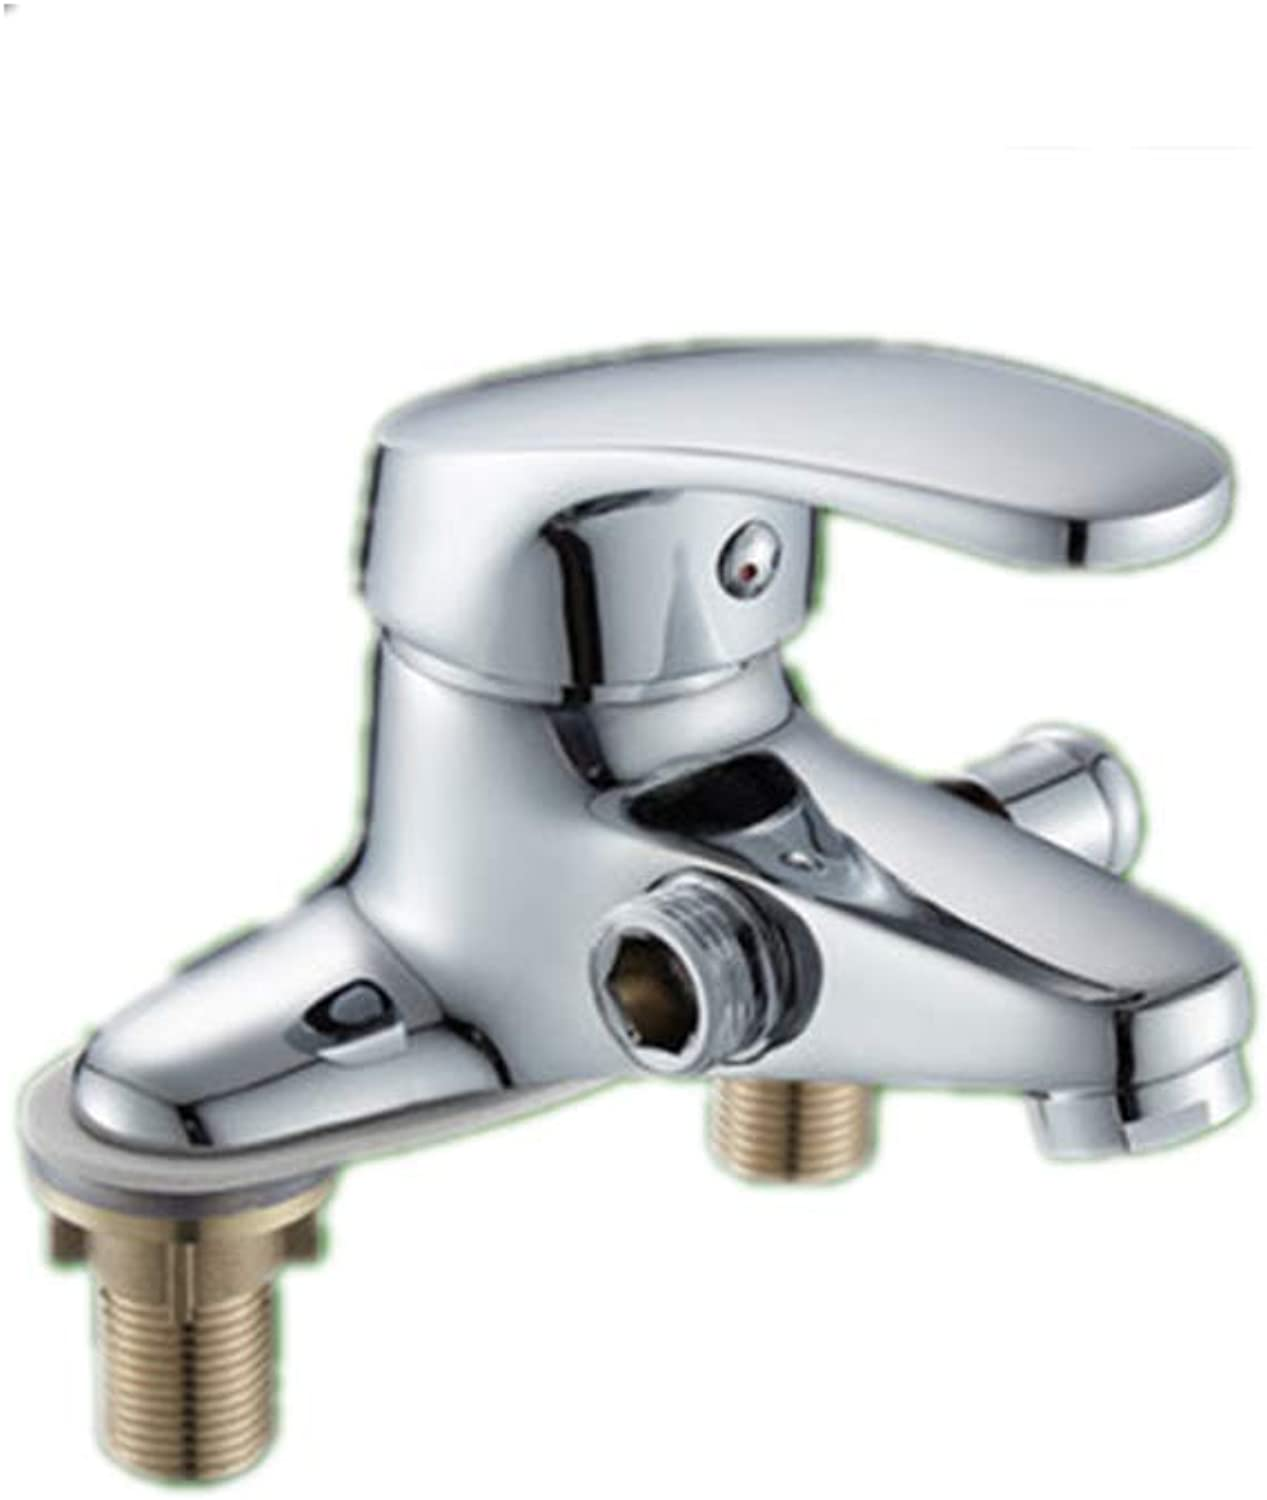 Lhxasd Copper core Double-Hole Basin hot and Cold wash Hand face Faucet Multi-Purpose Basin, A Section